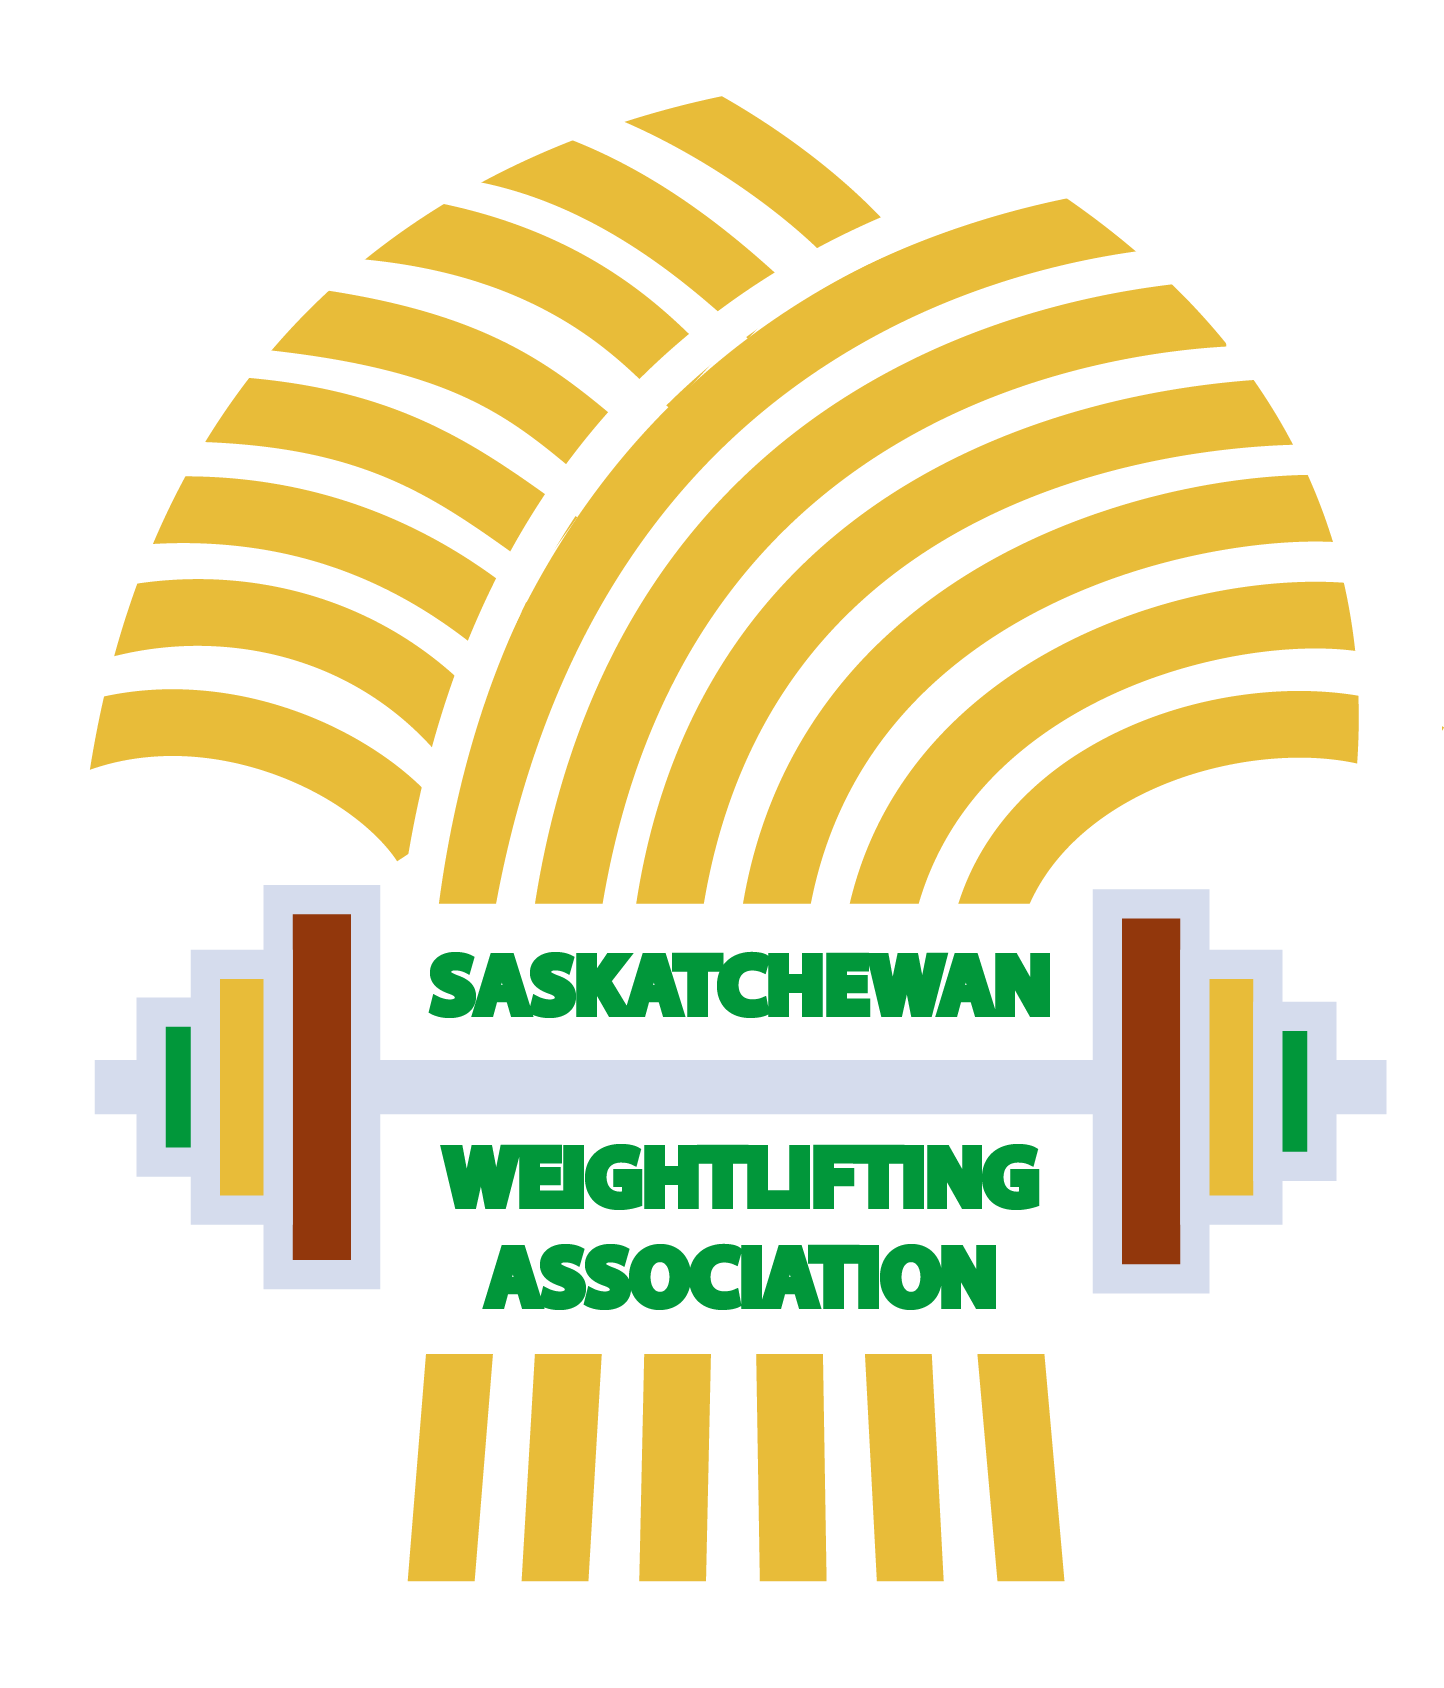 Saskatchewan Weightlifting Association